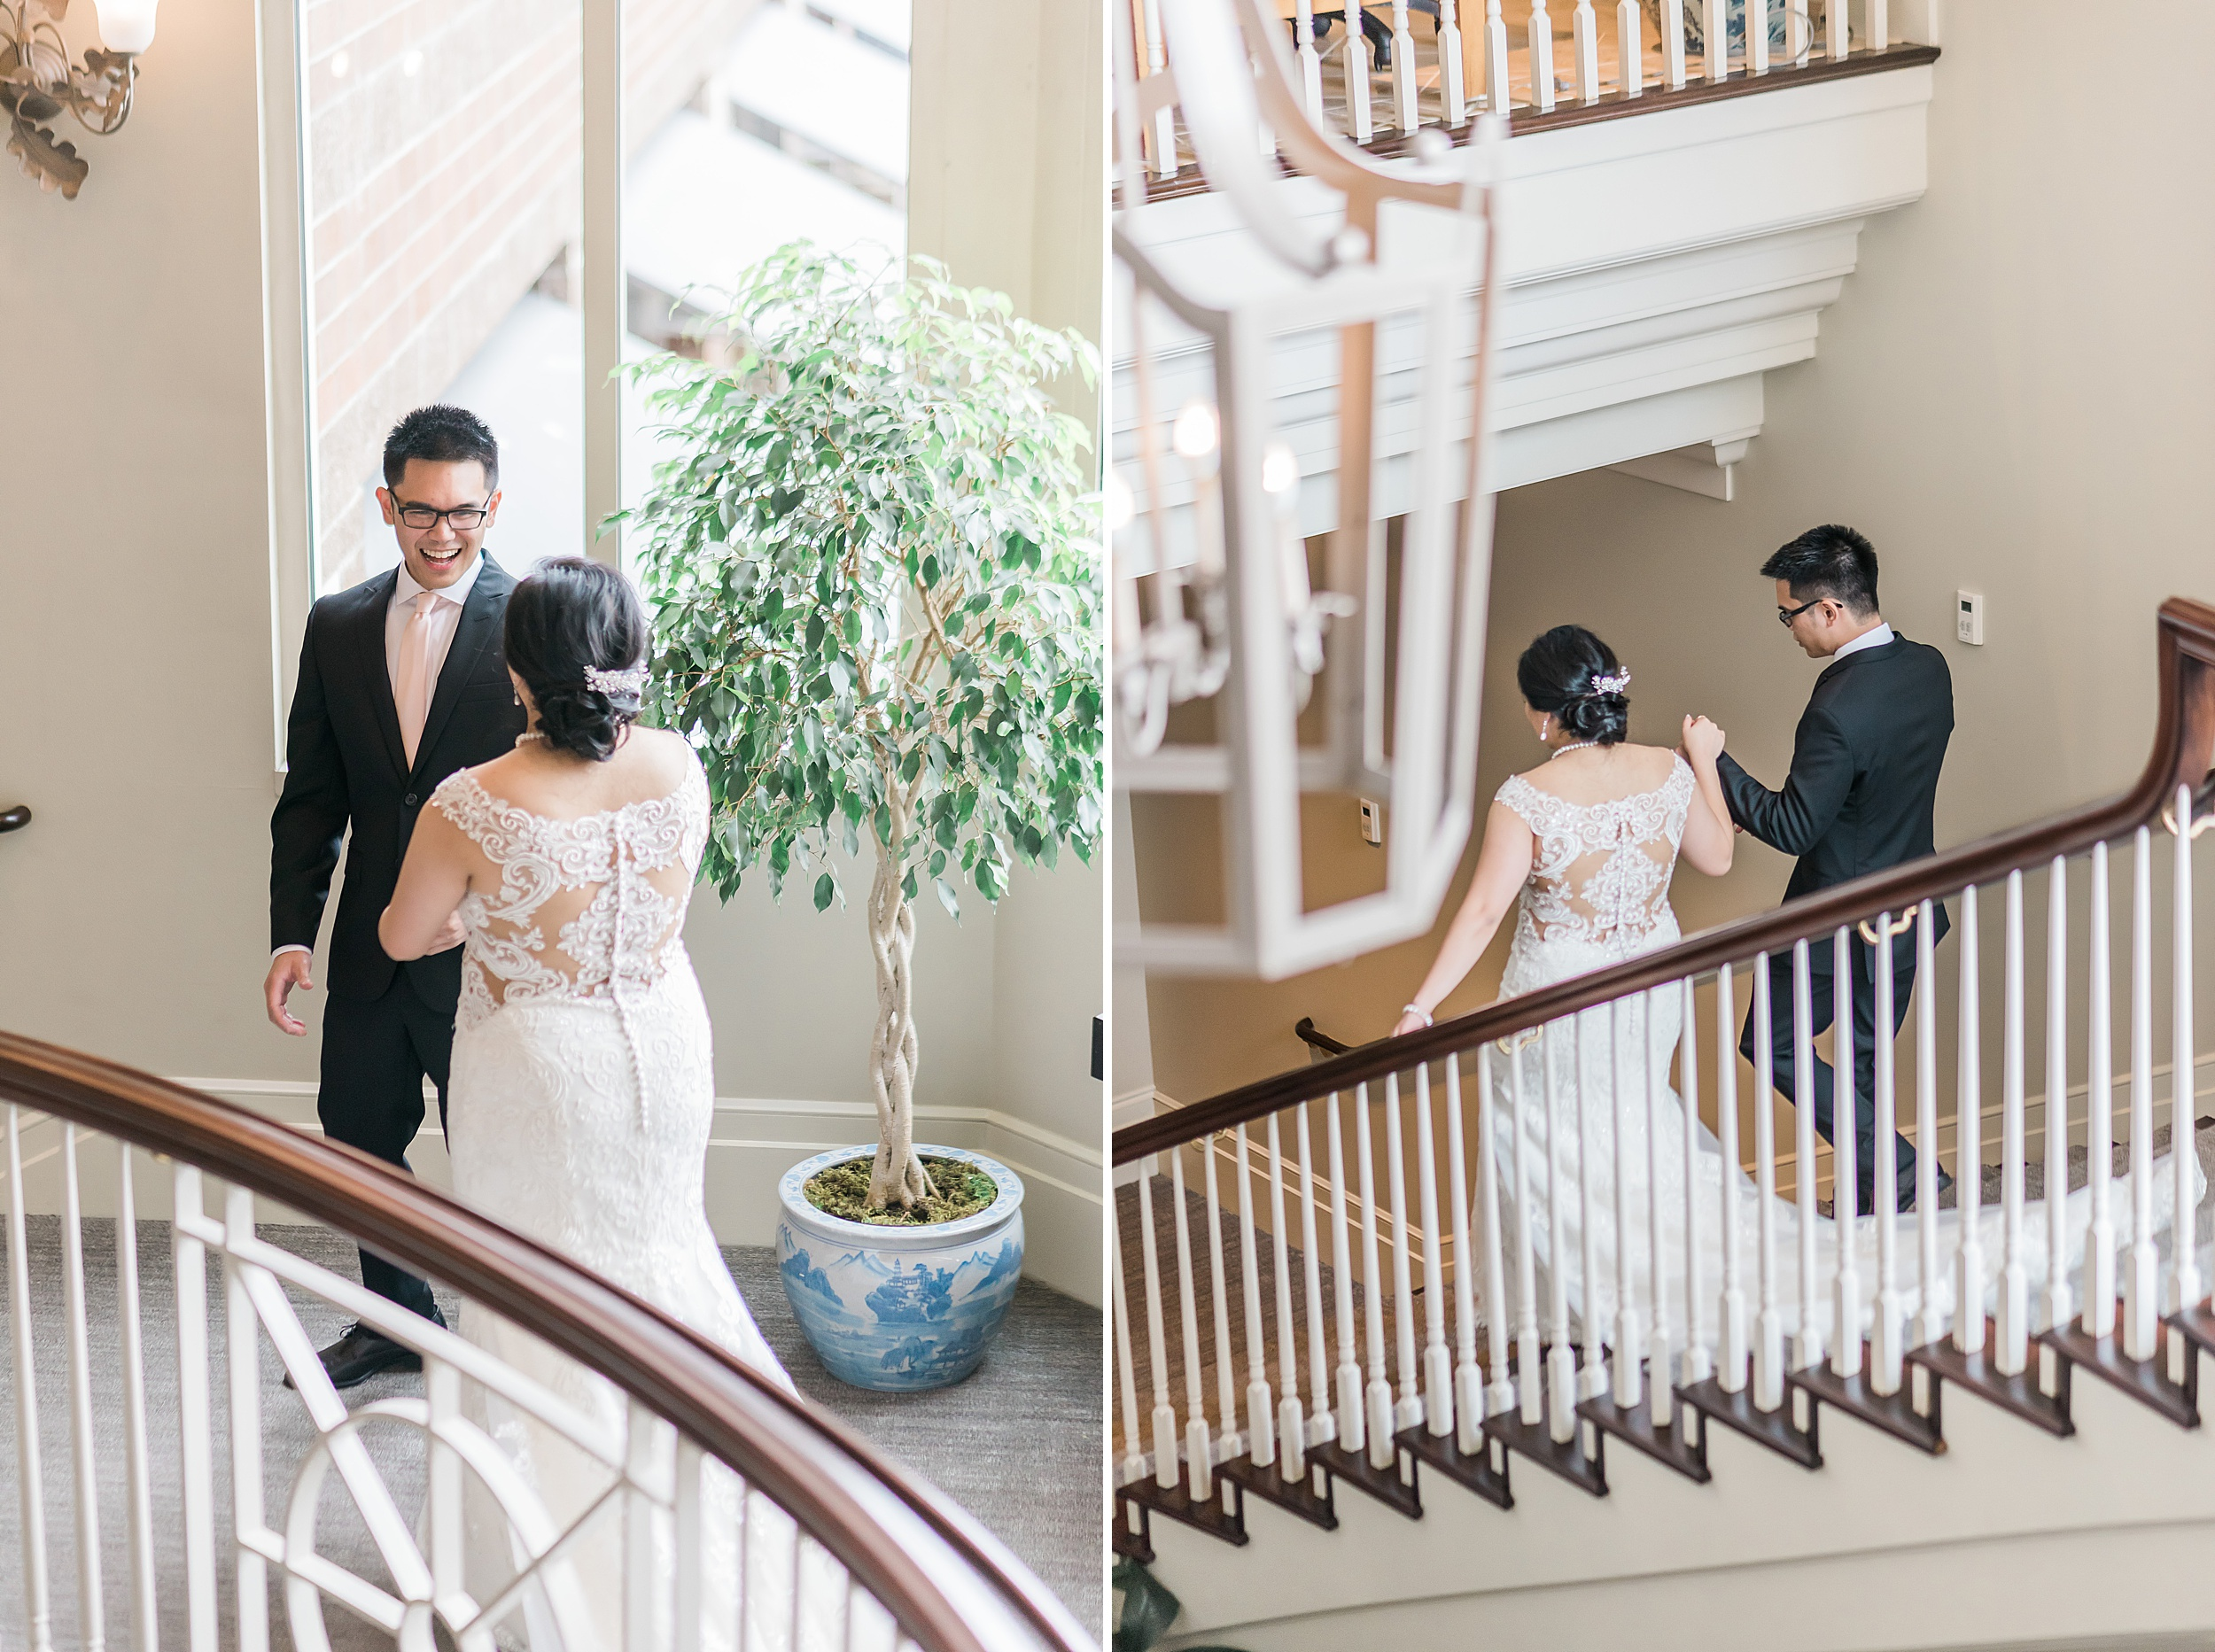 First look on staircare.Woodmark Hotel Waterfront Wedding. Seatt